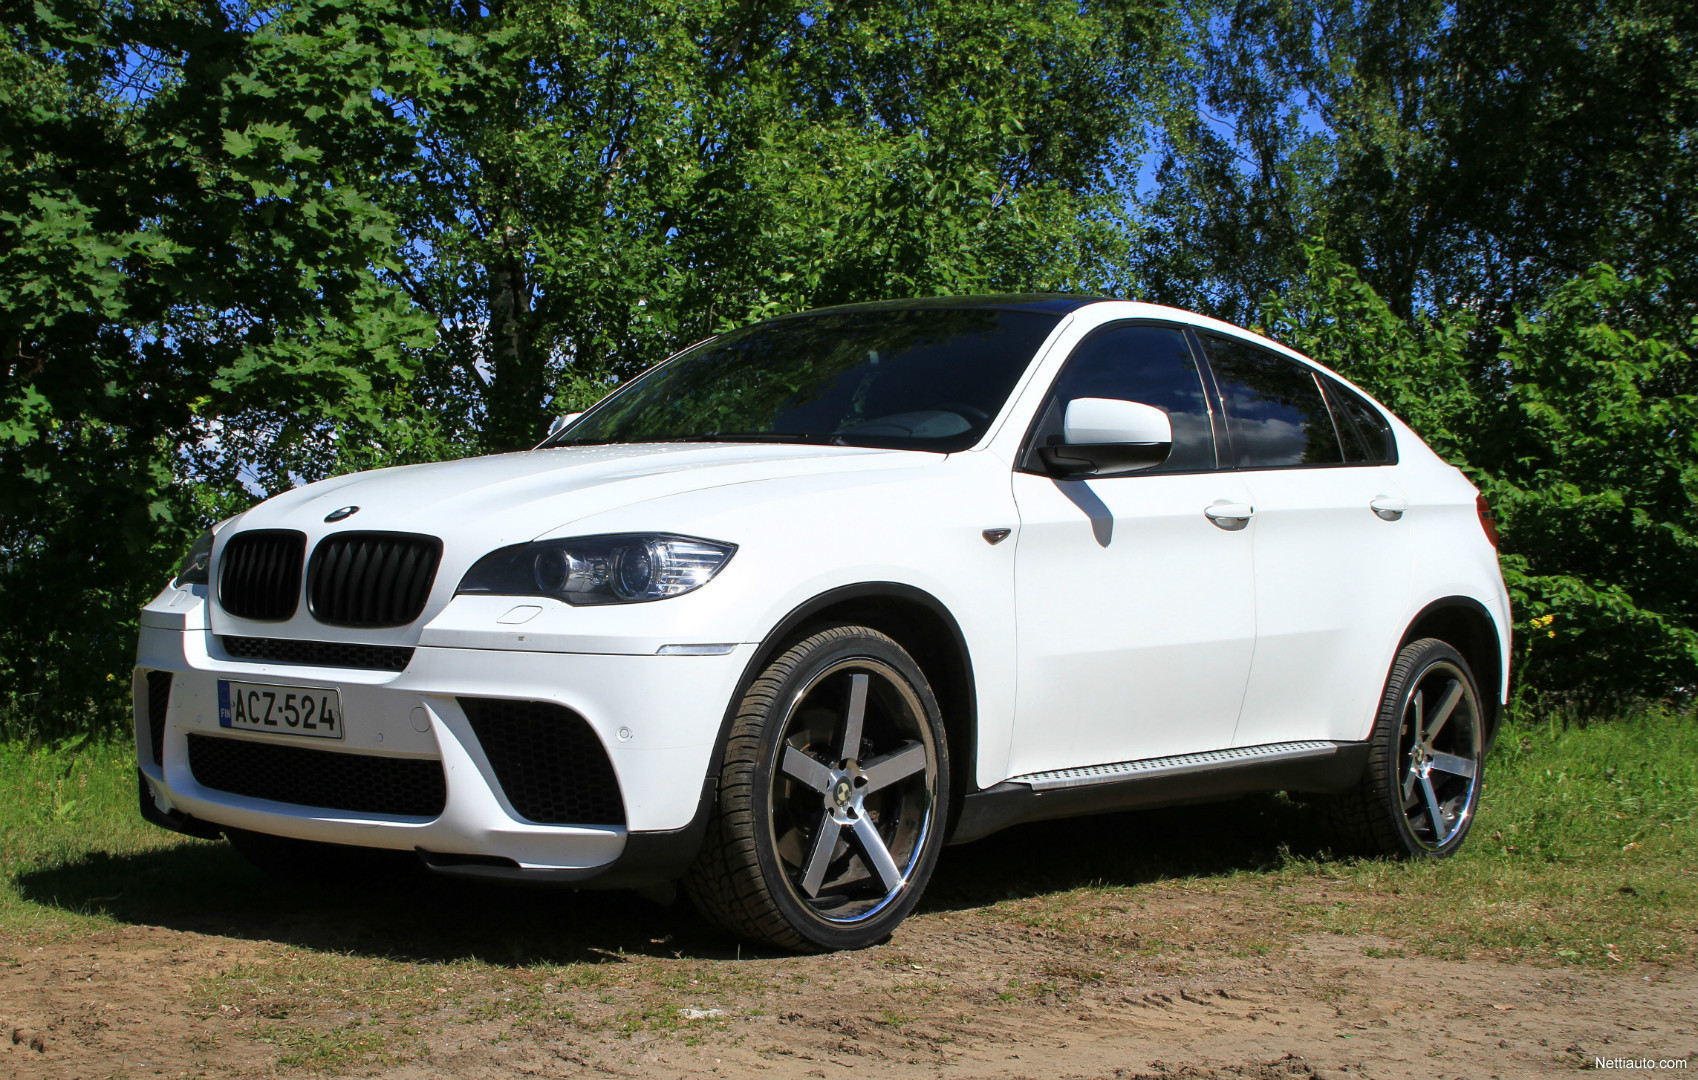 bmw x6 xdrive35d a e71 4x4 2008 used vehicle nettiauto. Black Bedroom Furniture Sets. Home Design Ideas